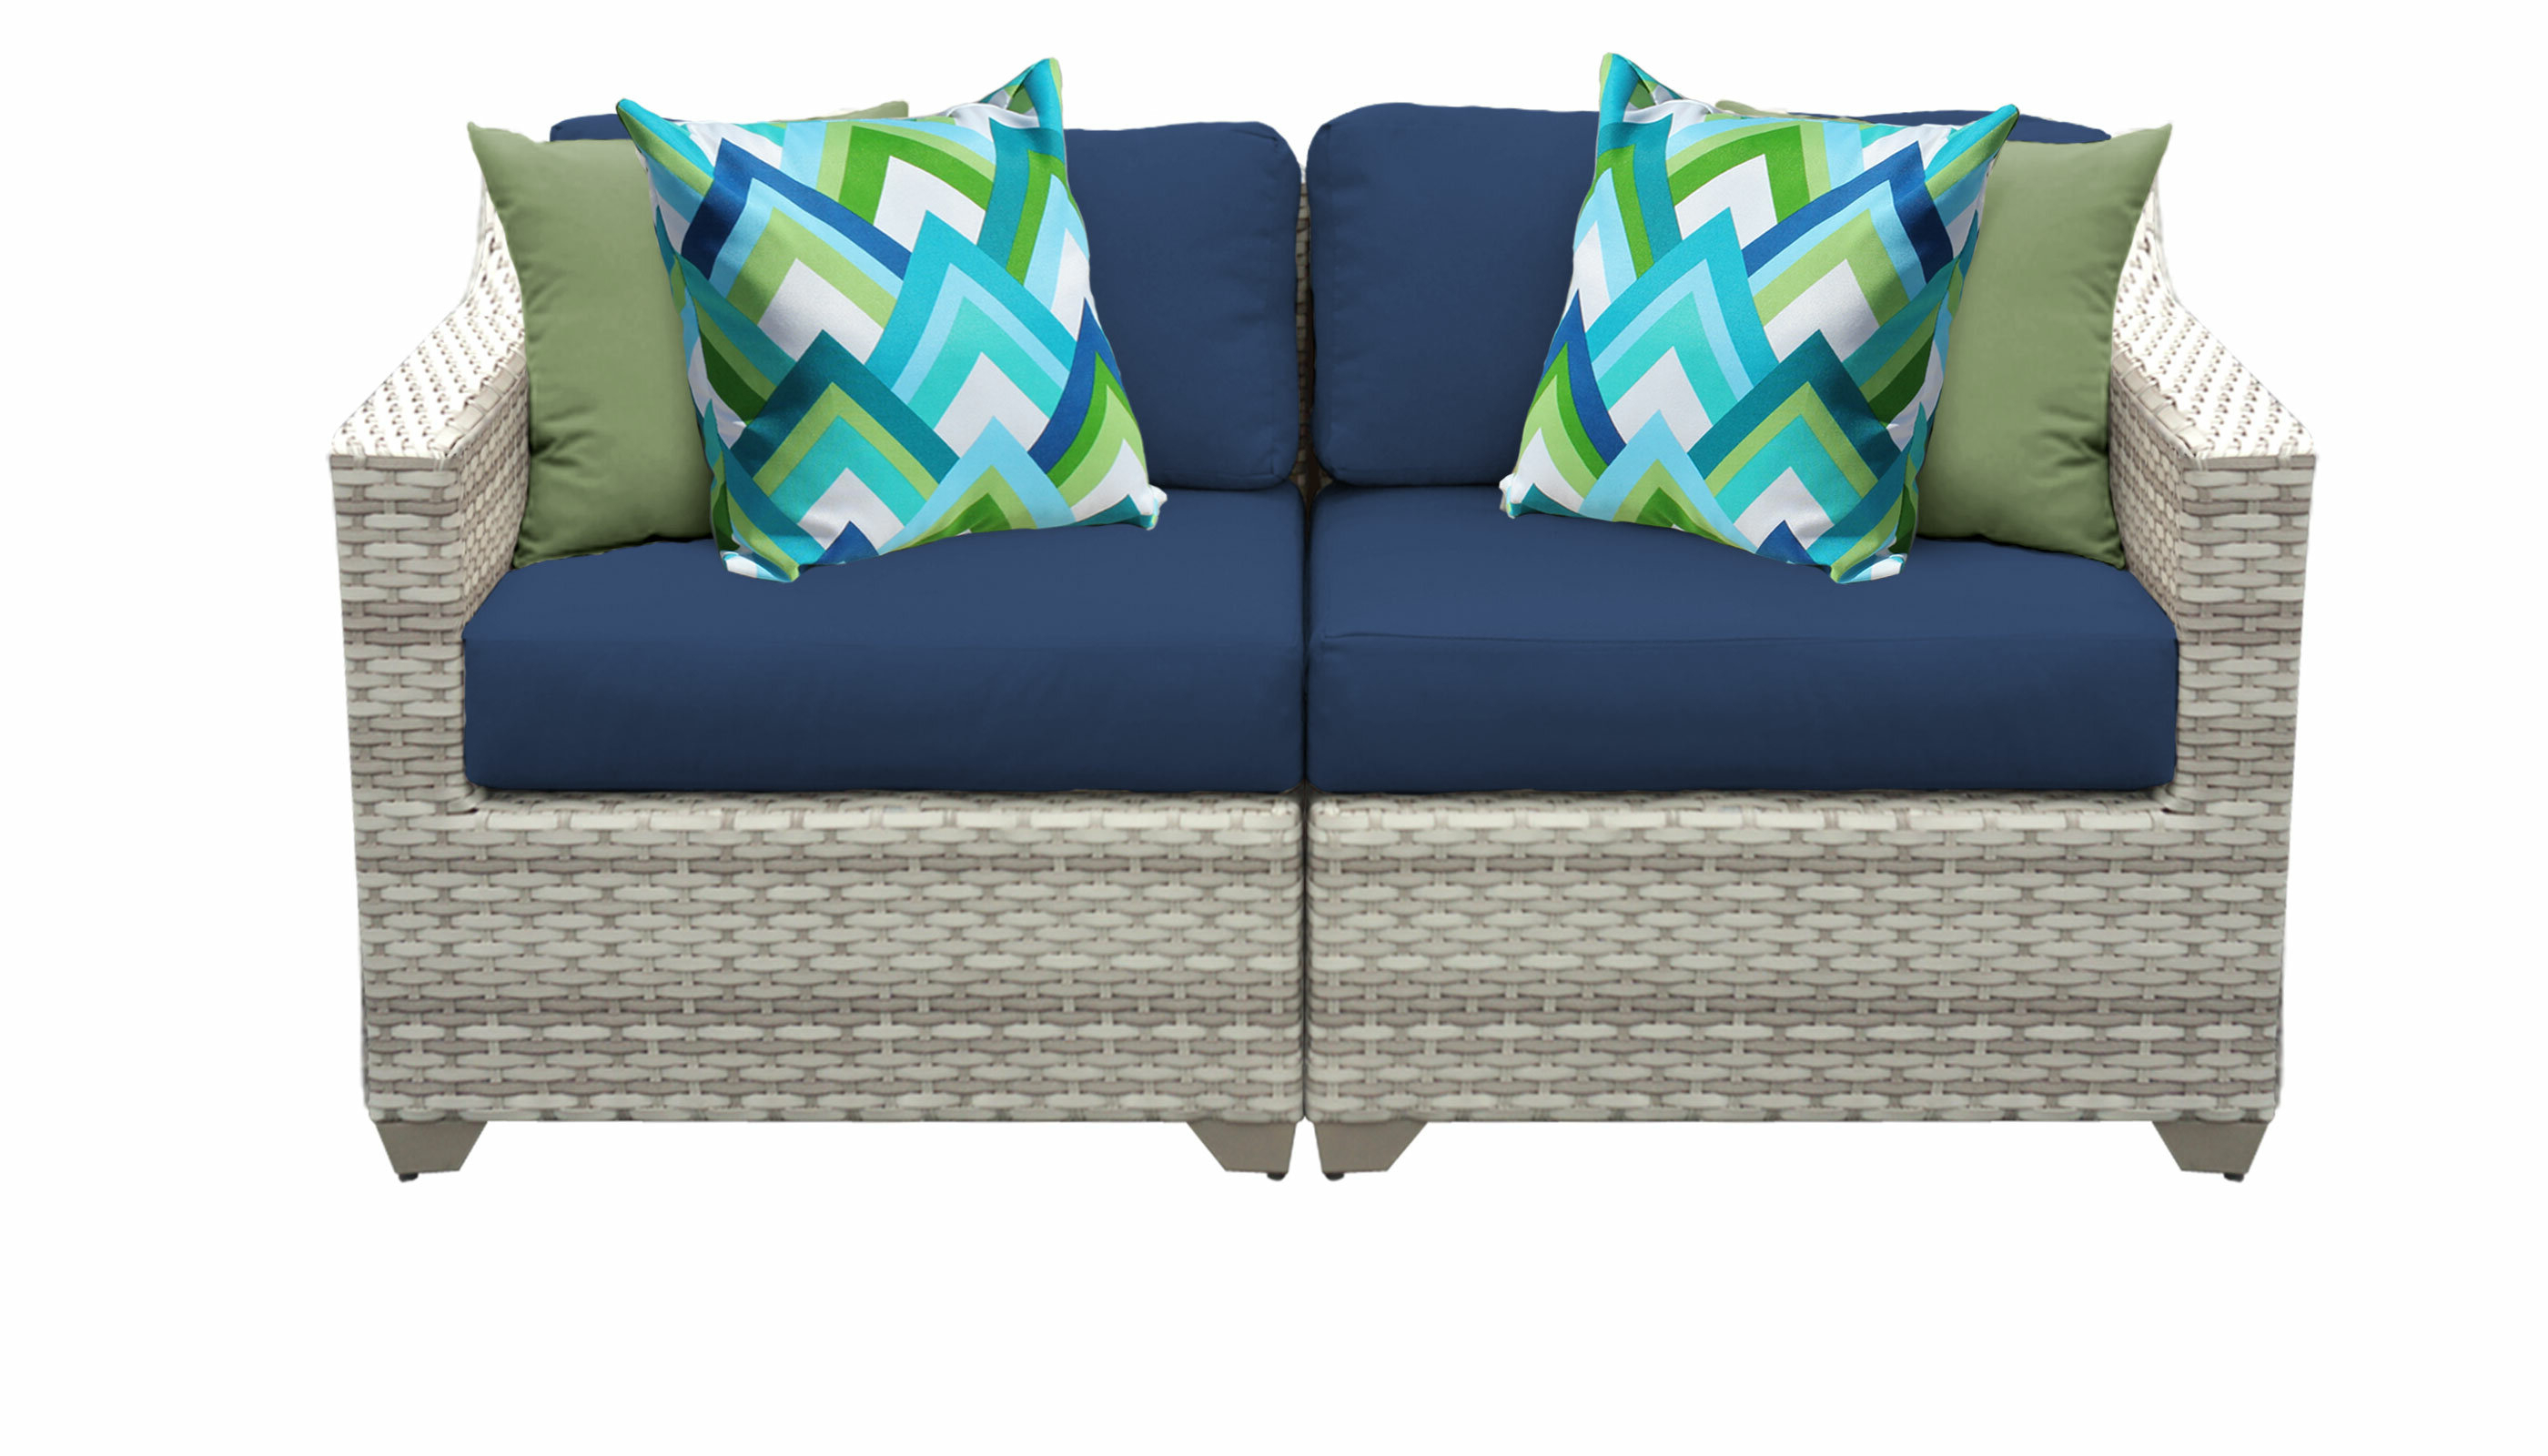 Falmouth Loveseat With Cushions Within 2019 Falmouth Loveseats With Cushions (View 5 of 20)